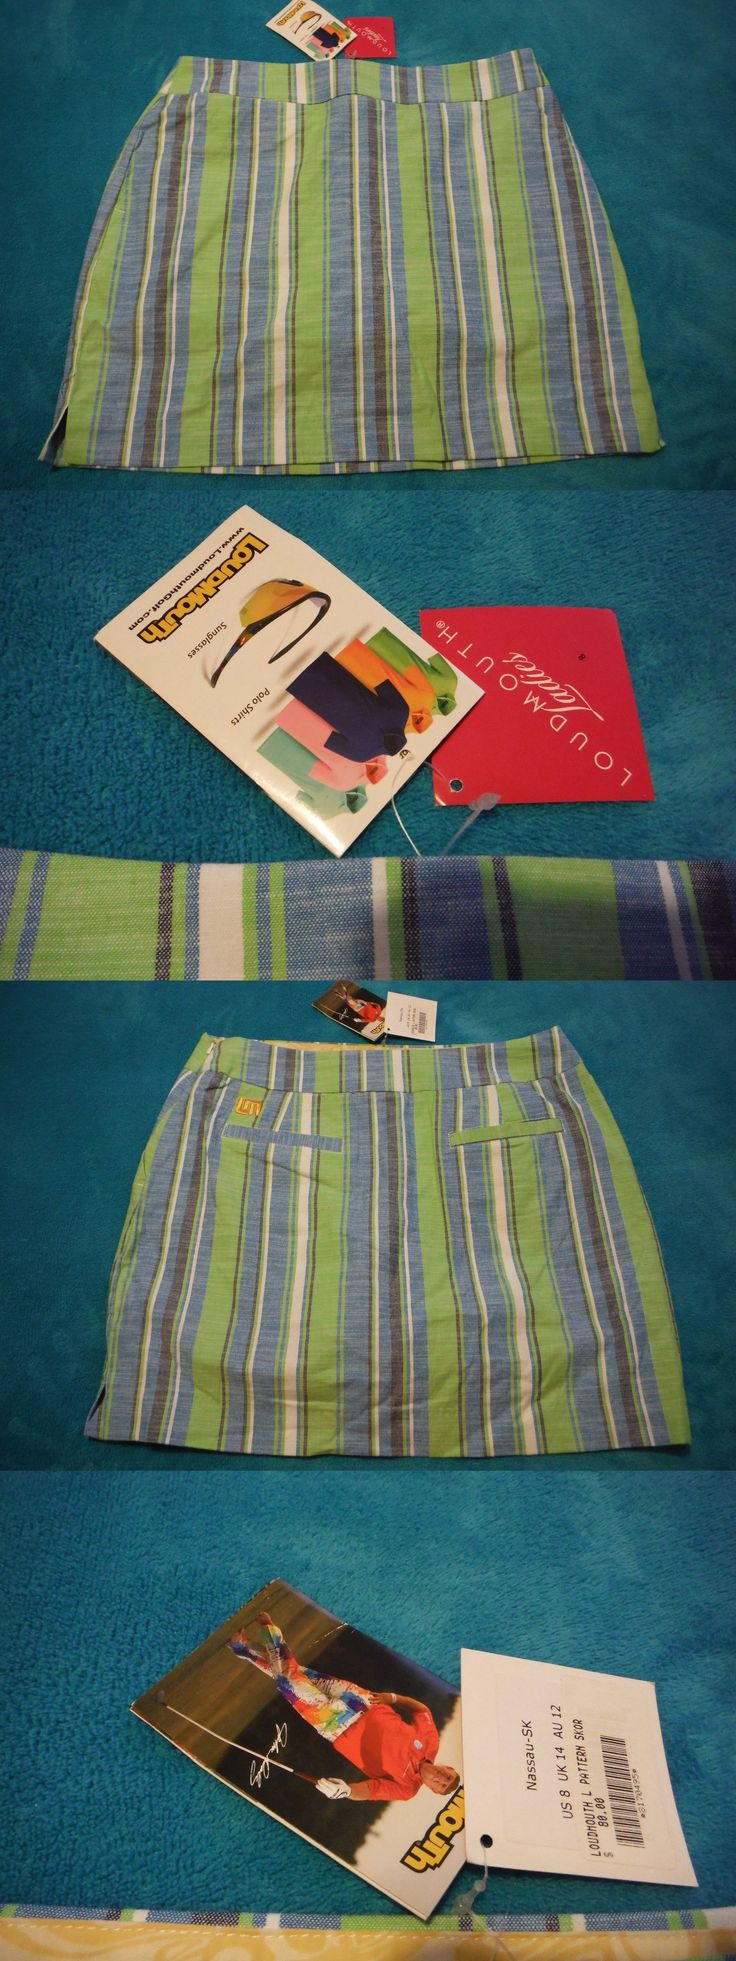 Skirts Skorts and Dresses 179003: Womens Loudmouth Nassau Golf Skort - Size: 8 - New With Tags!!! -> BUY IT NOW ONLY: $39.99 on eBay!